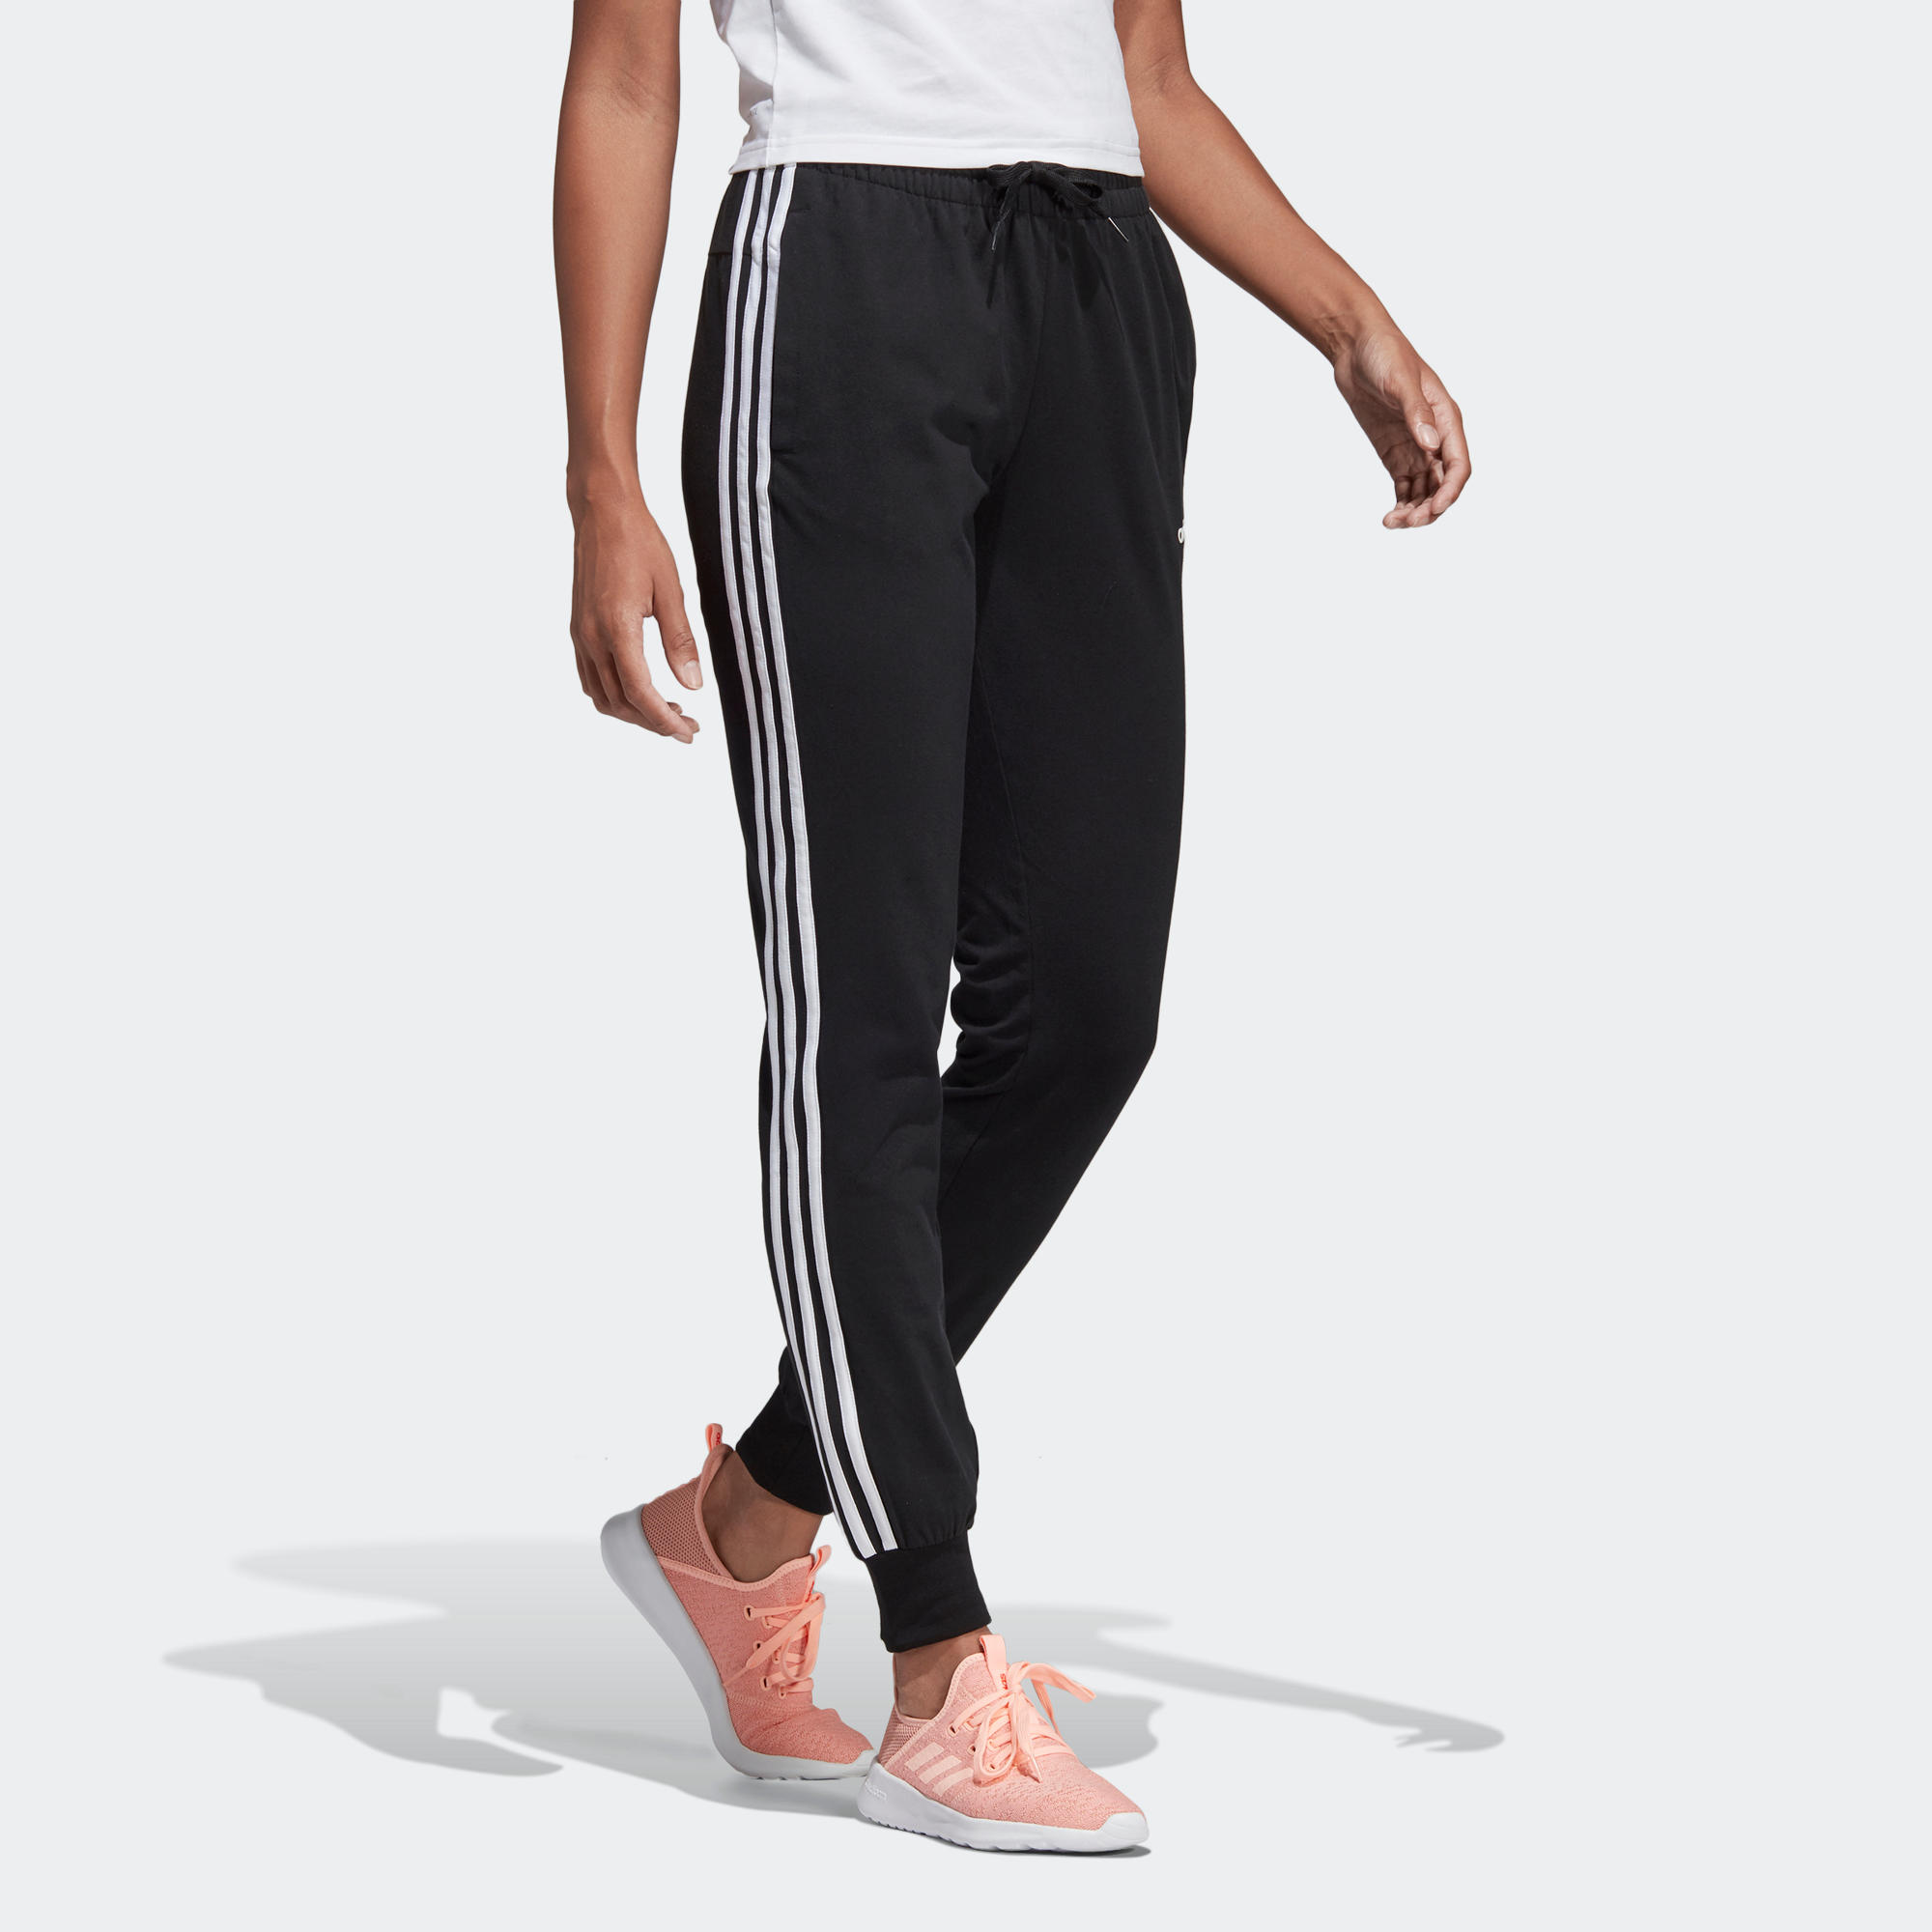 completi sportivi donna fitness adidas